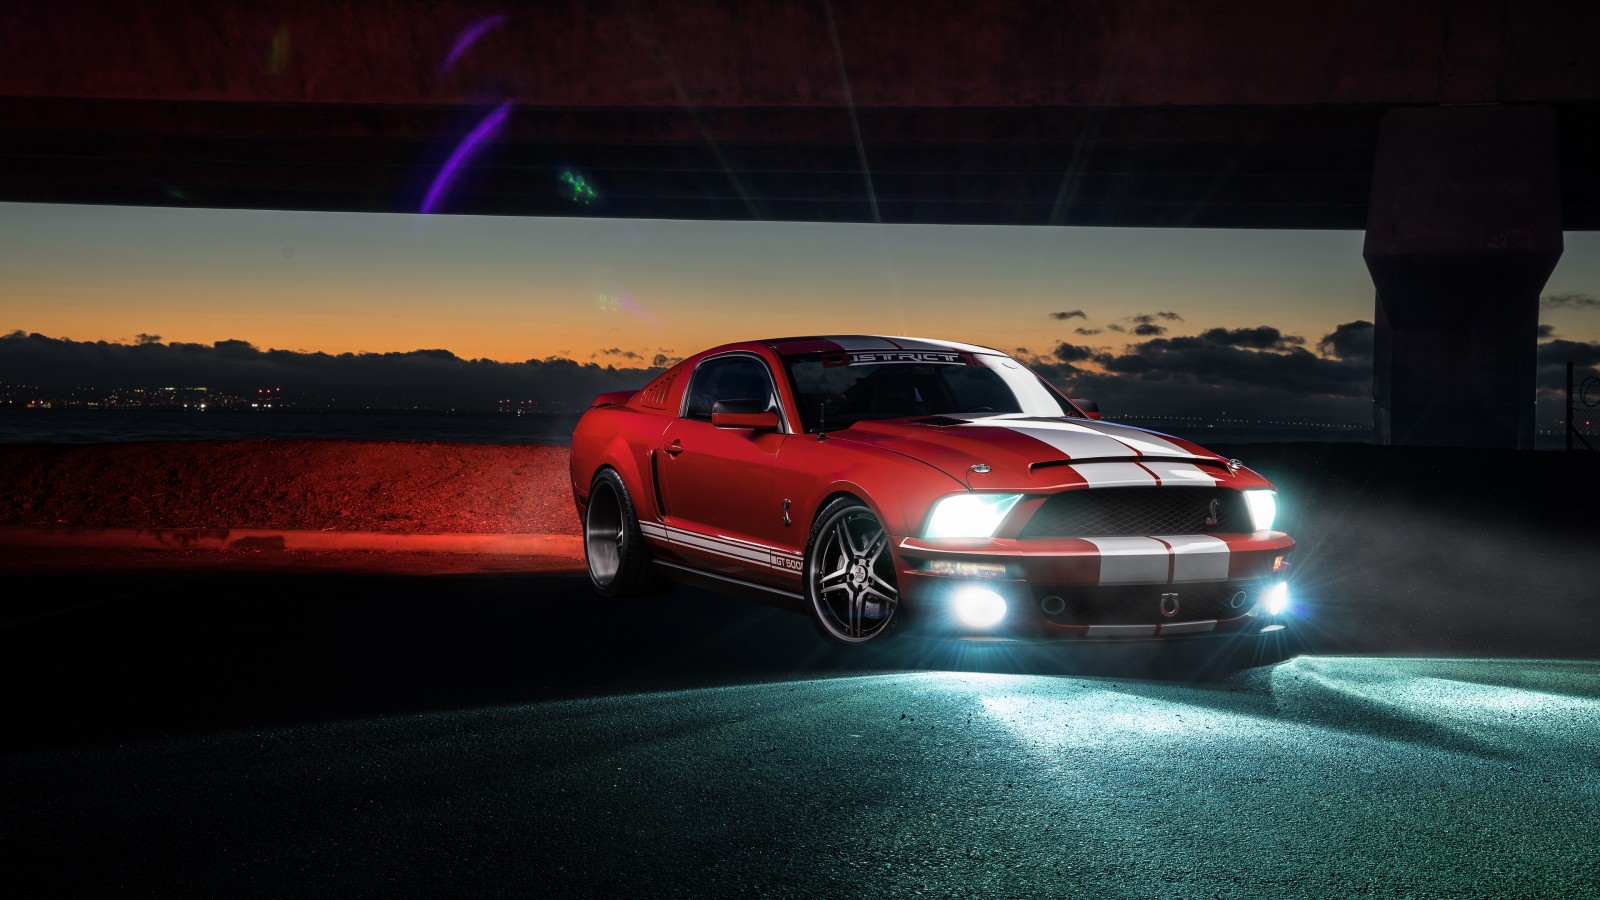 2017 Shelby Gt500 >> Ford Mustang Shelby GT500 Wallpaper | HD Car Wallpapers | ID #6526